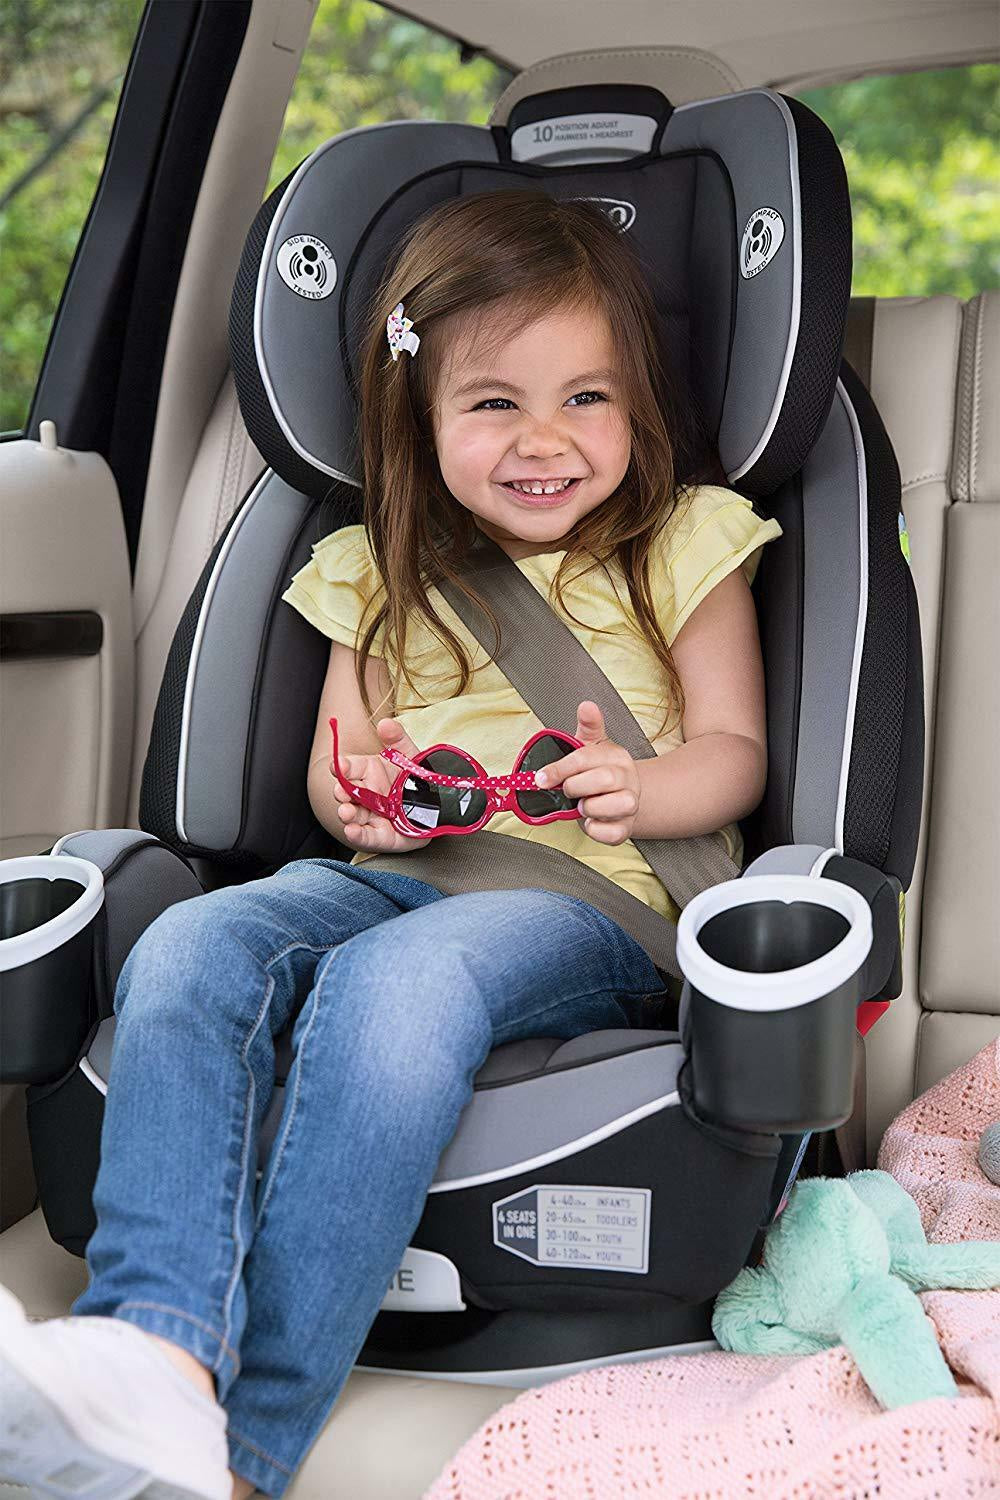 Graco 4Ever All-in-One Car Seat - Cameron